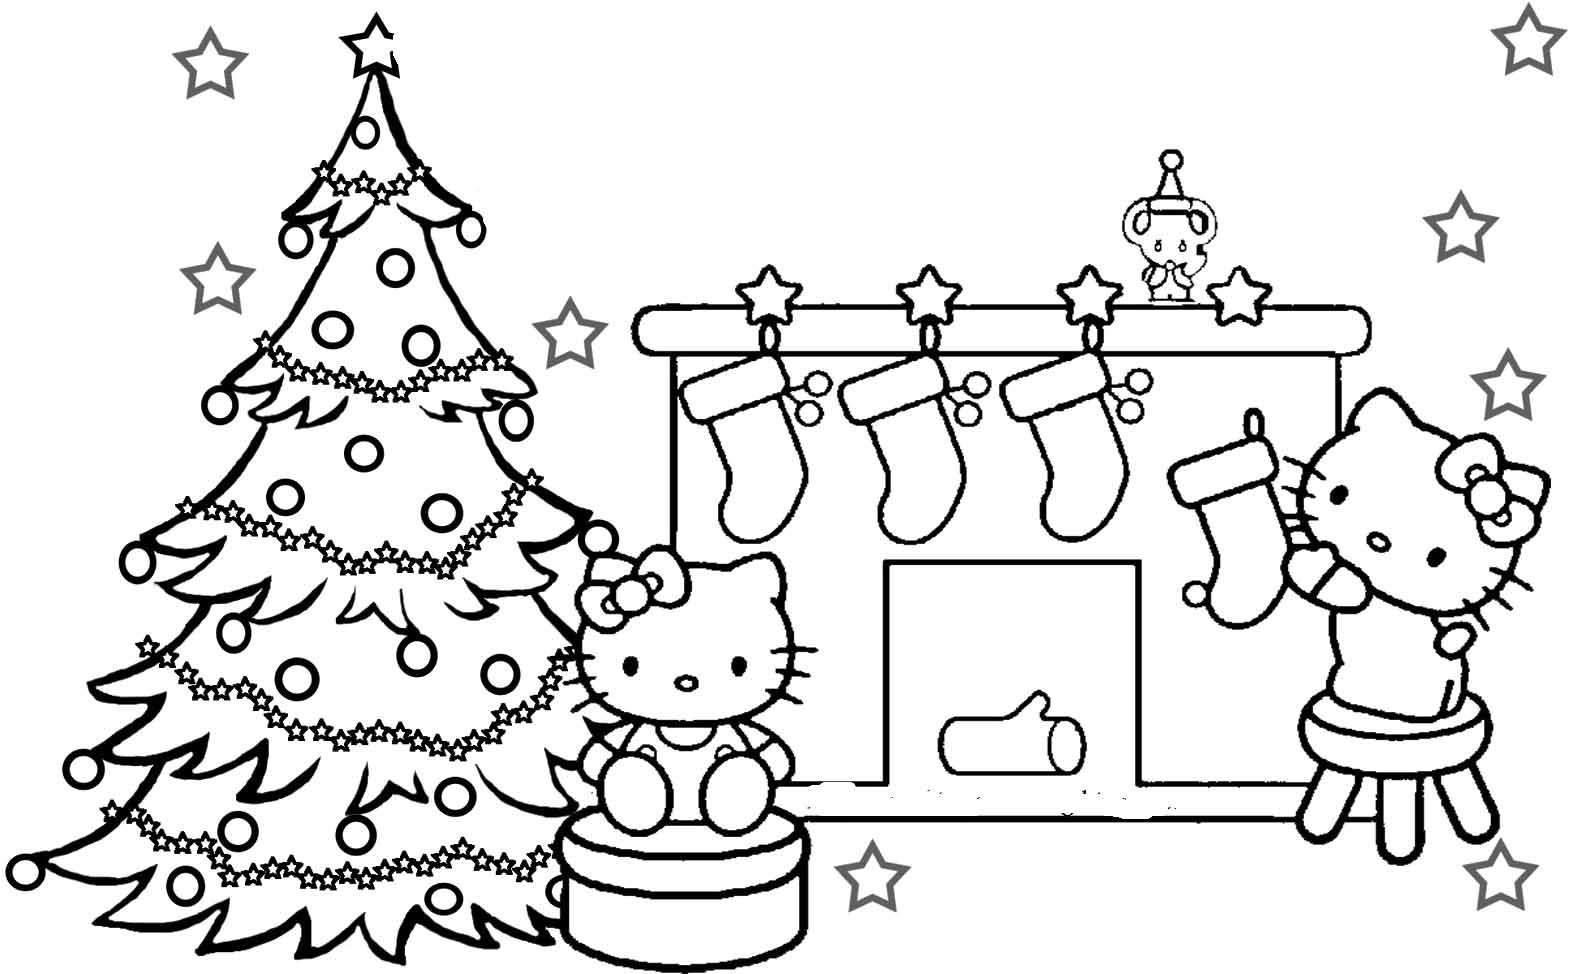 Best ideas about Free Christmas Printable Coloring Sheets For Kids . Save or Pin Christmas Coloring Pages For Kids Printable Coloring Home Now.